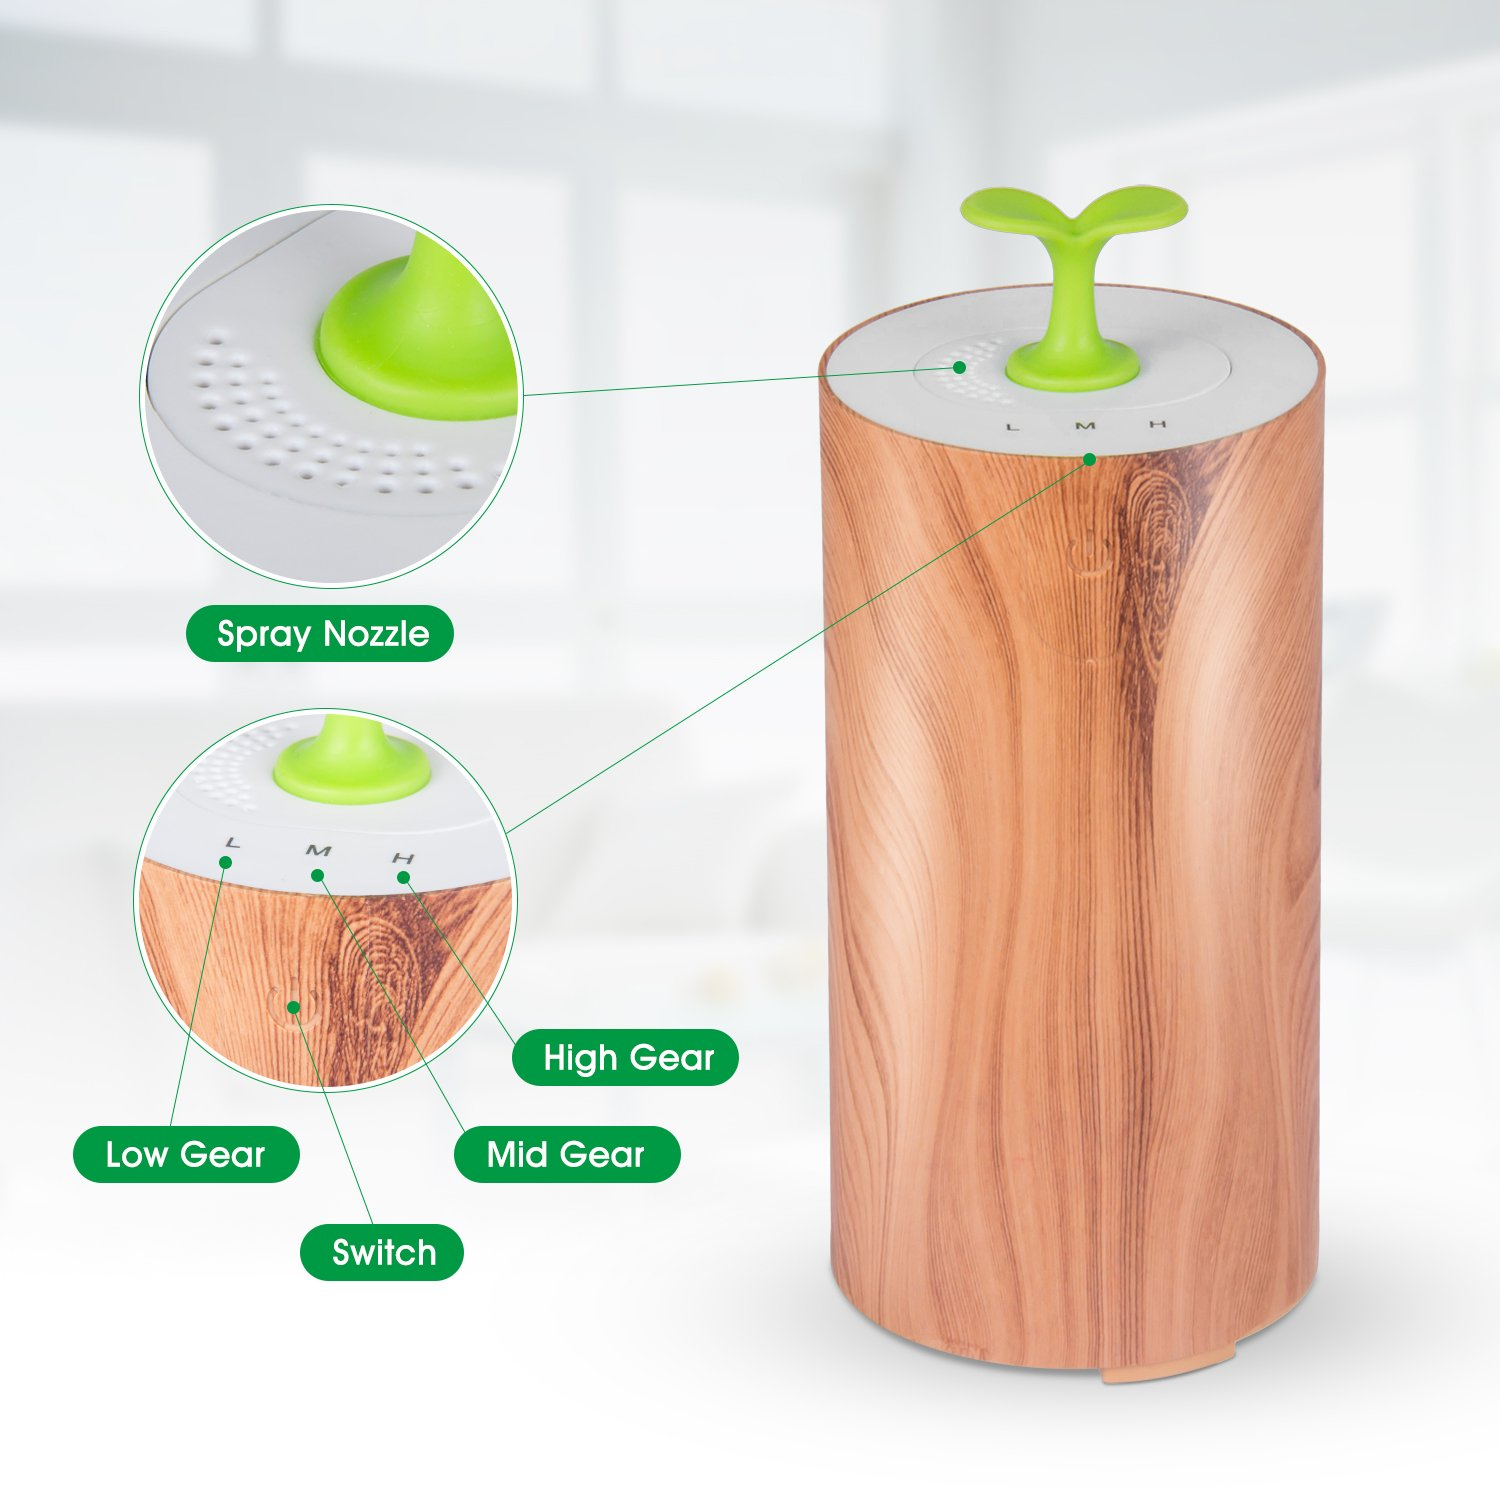 Essential Oil Diffuser for car, Bbymie Essential Oil Diffuser waterless Mini Oil Diffuser Wood Grain Aromatherapy just for car or Small Room by Bbymie (Image #6)